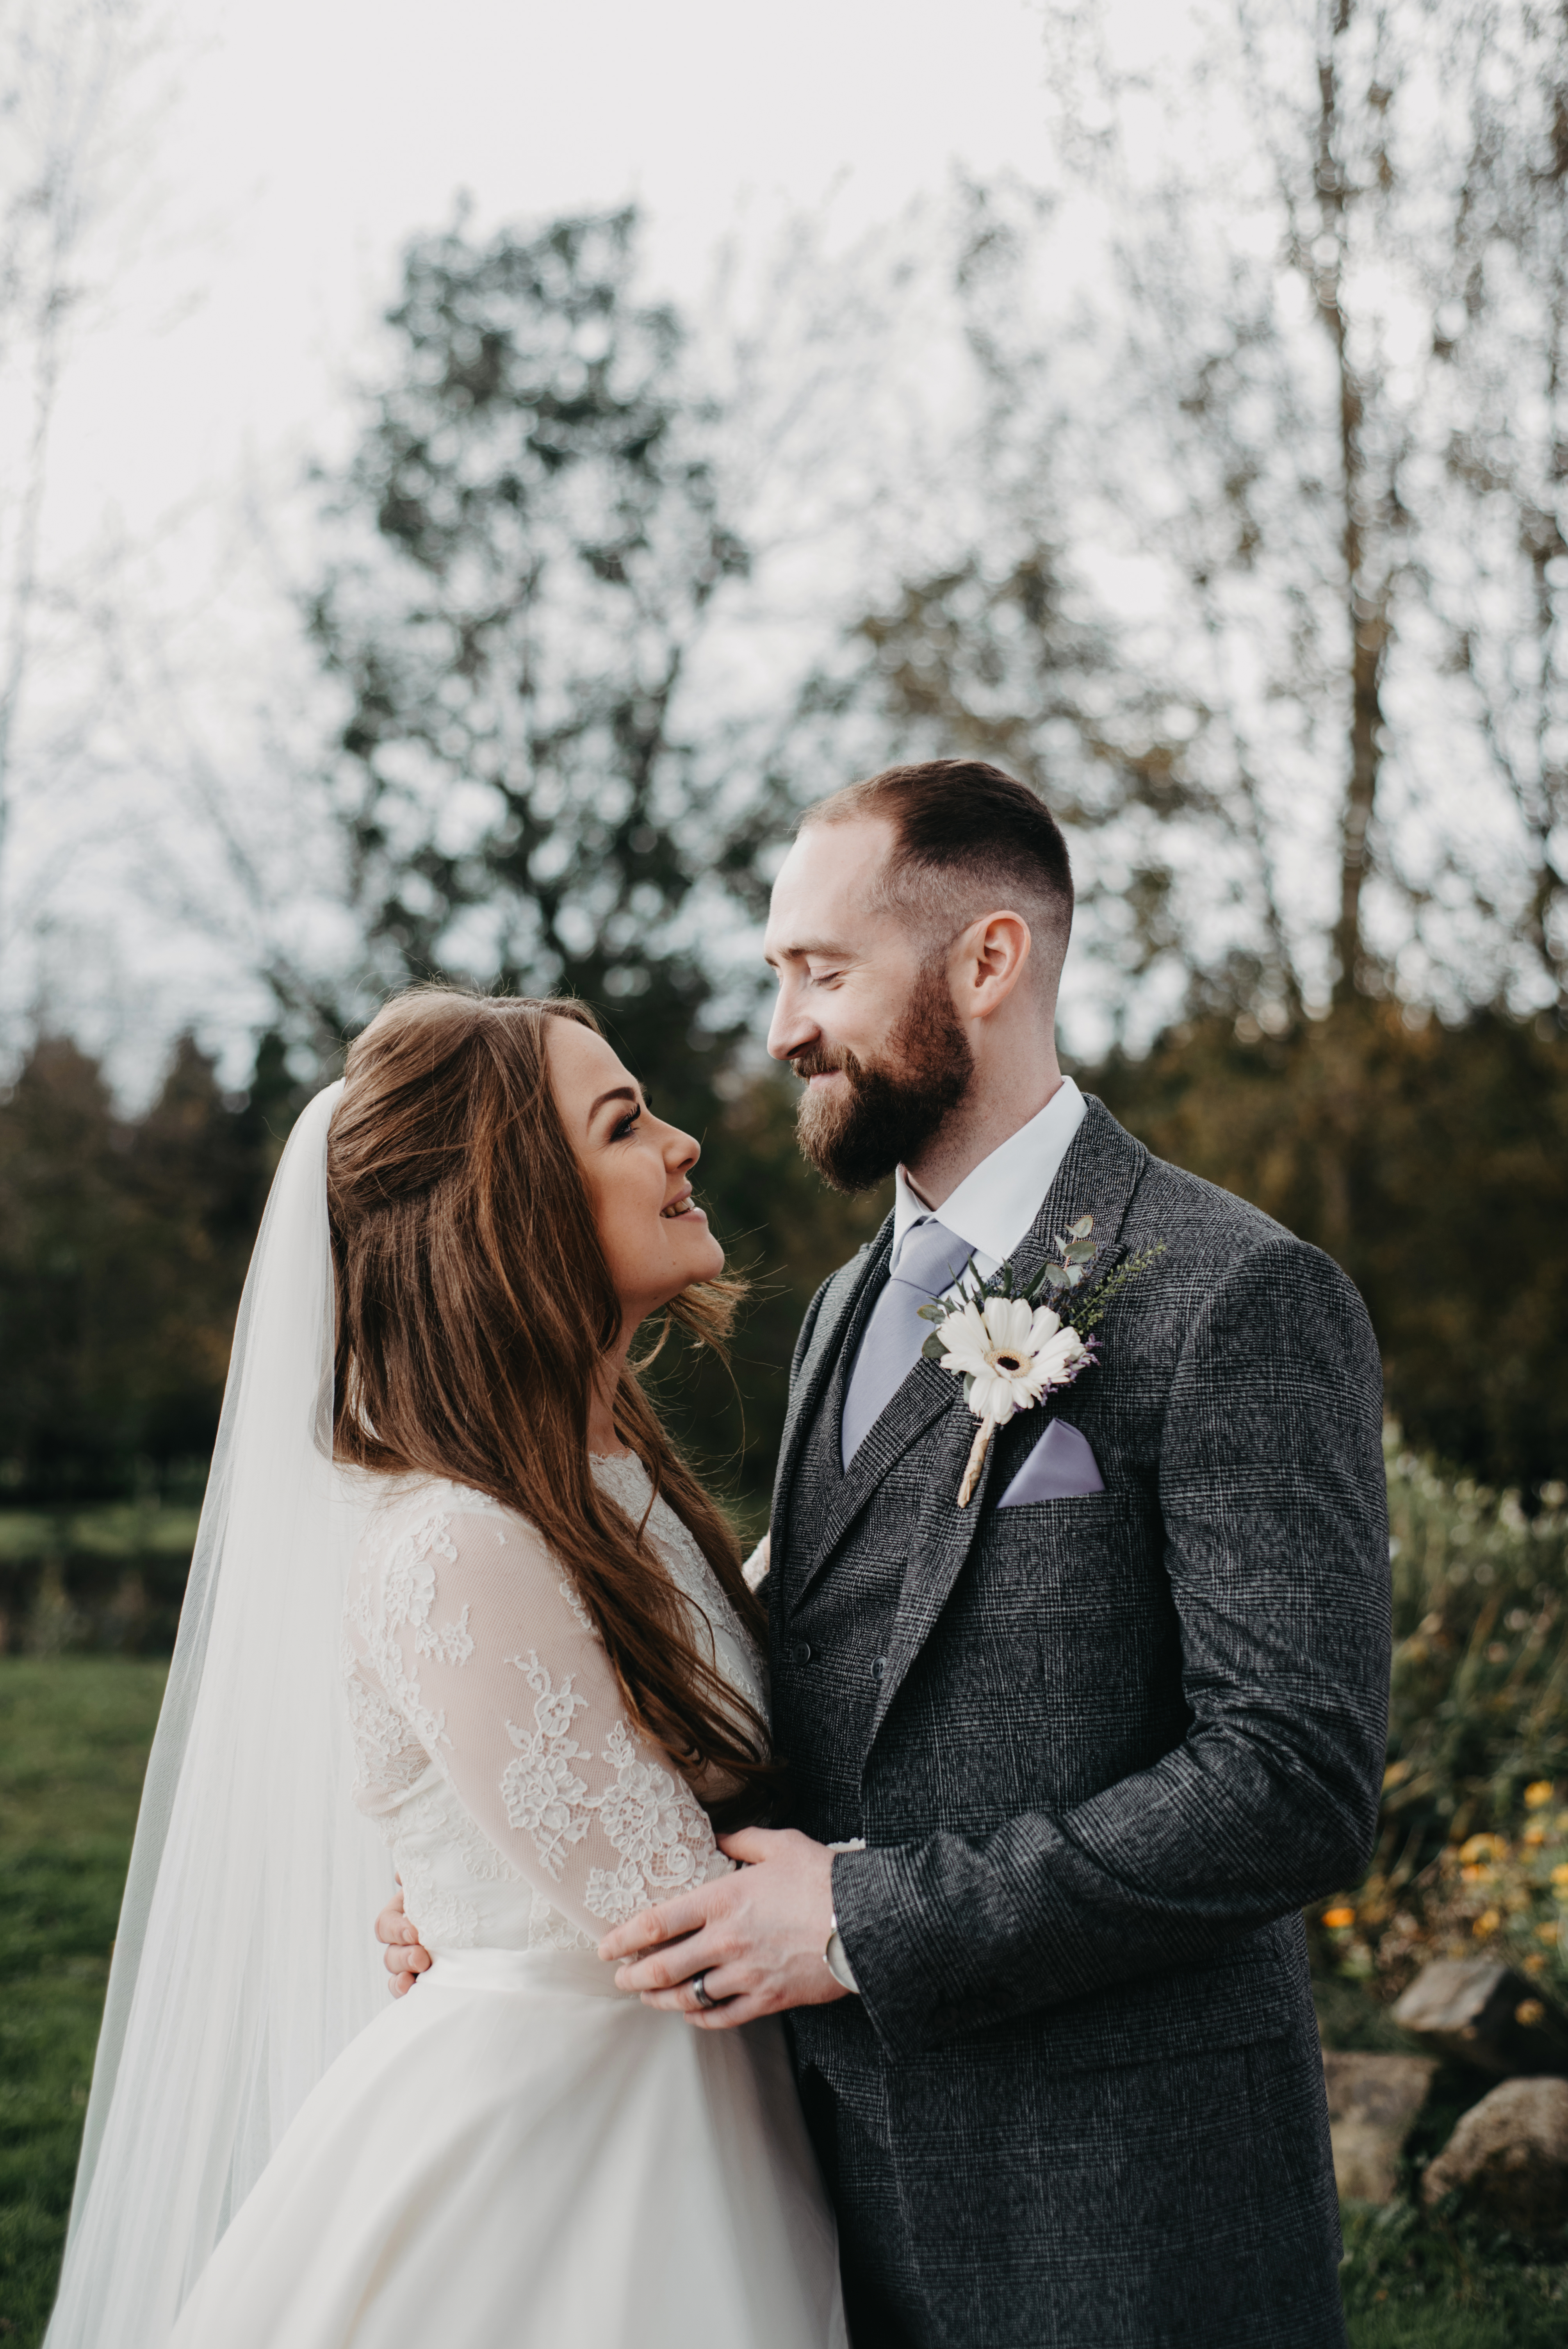 The bridal couple holding each other and smiling